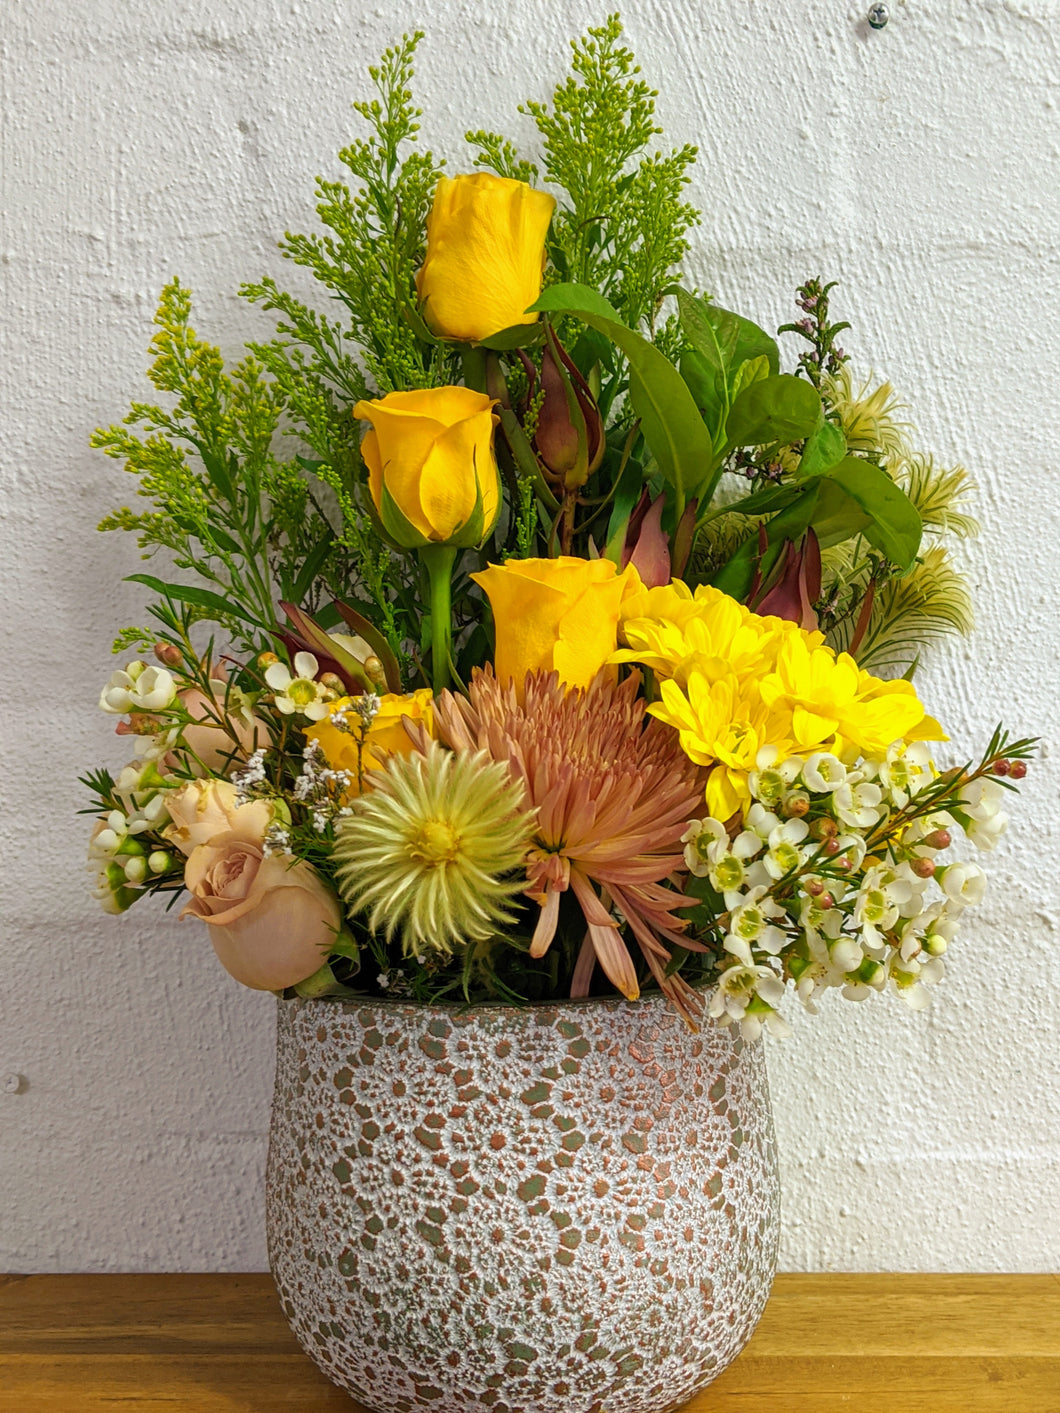 ceramic vase with yellow rose, chrysanthemums and greenry